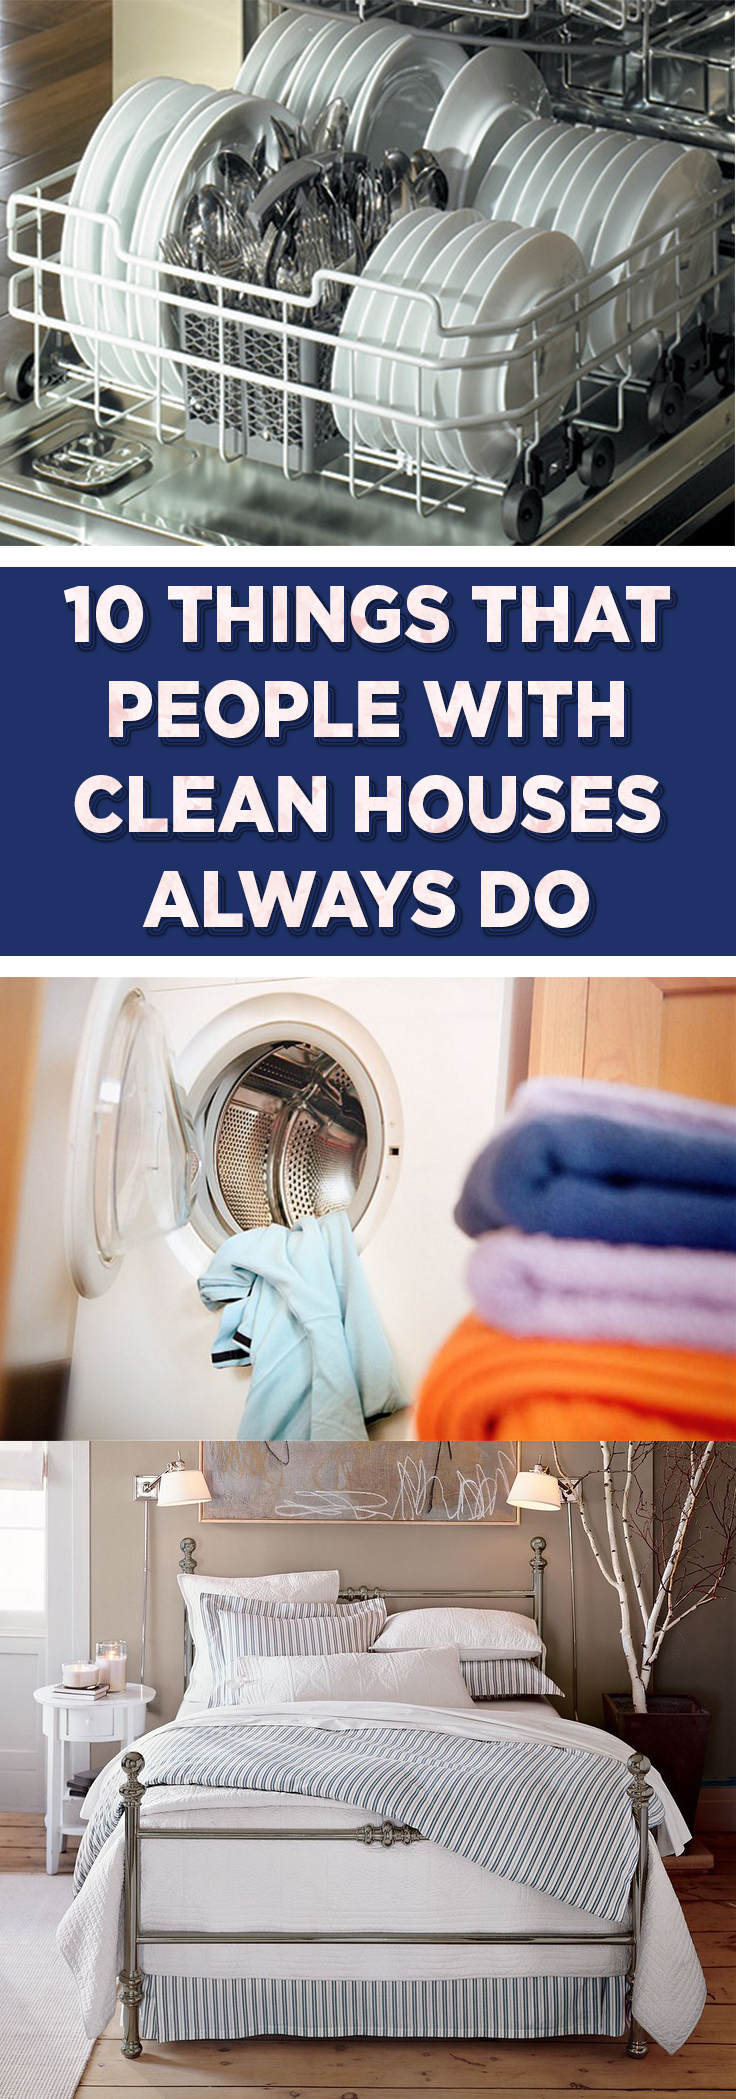 Clean home, clean houses, clean house tips, popular pin, DIY clean home, easy cleaning tips, cleaning hacks.#Cleaning #CleaningTips #CleanHome #CleanHomeHacks #Organization #HomeOrganization